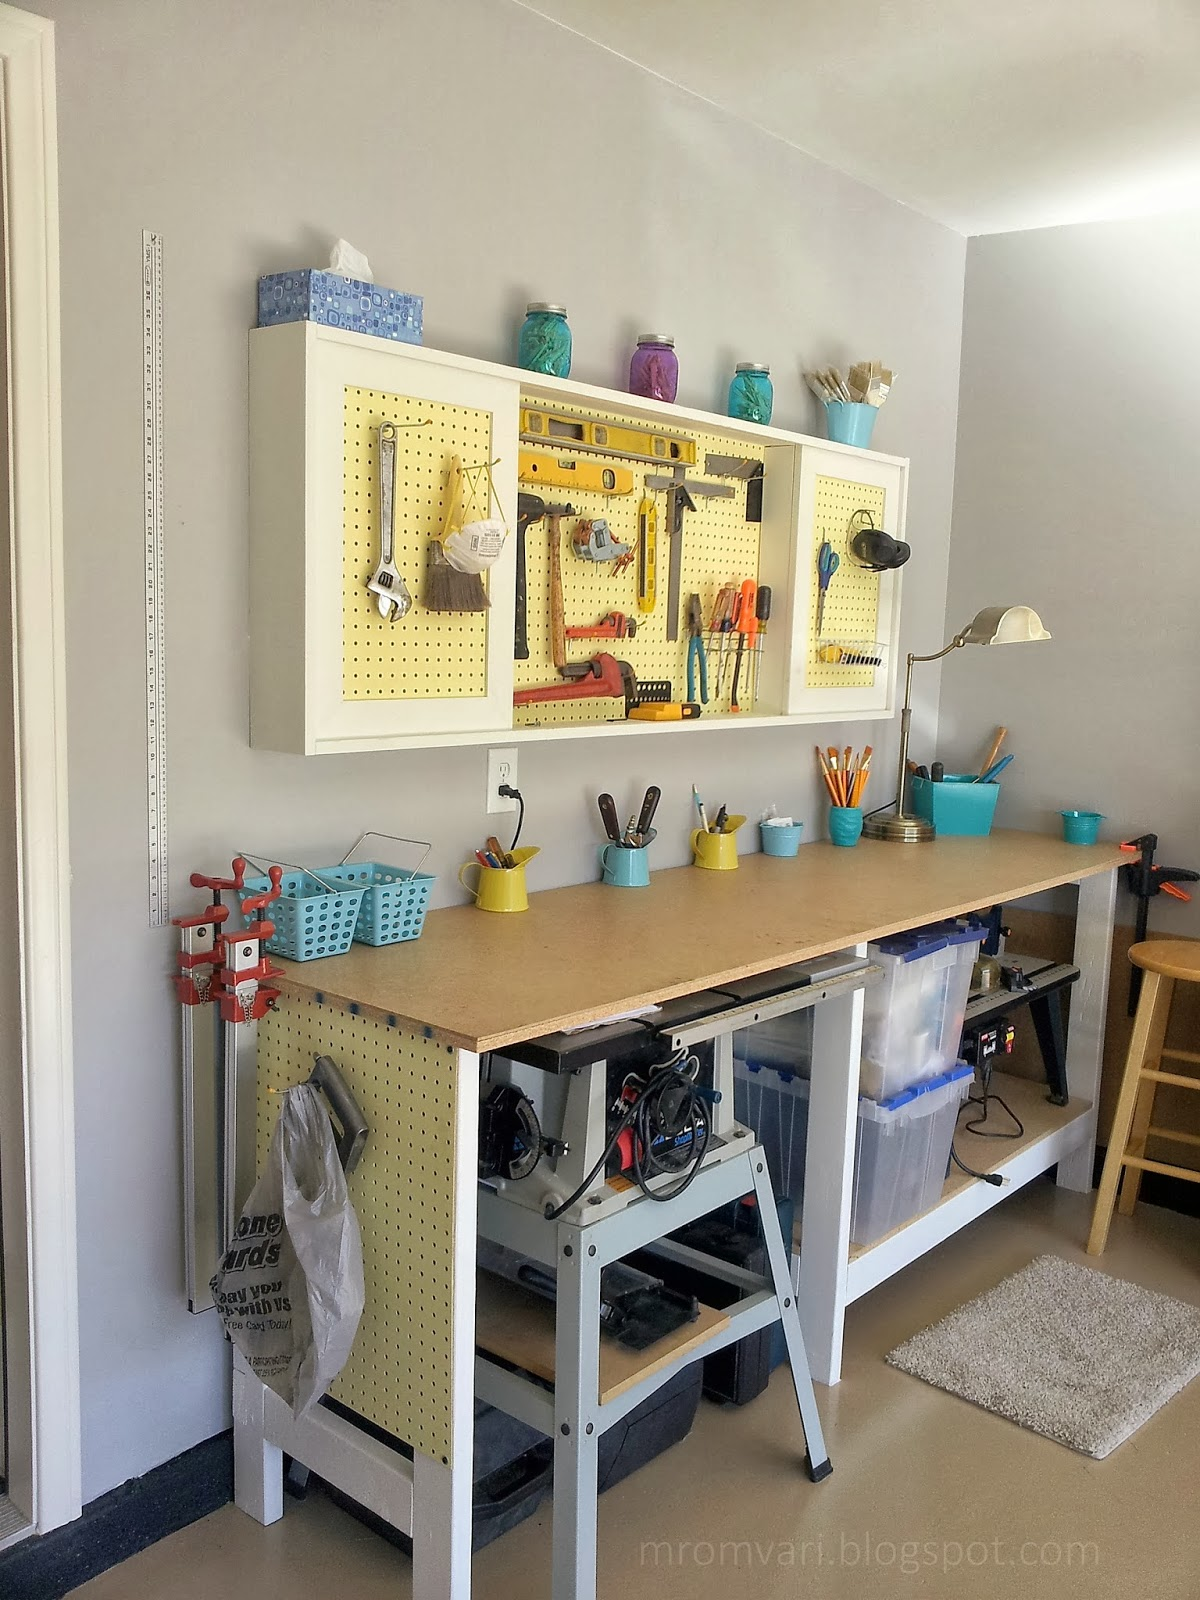 Build sliding cabinet doors - Build A Diy Workbench And Wall Mount Pegboard Tool Cabinet With Sliding Doors Featured